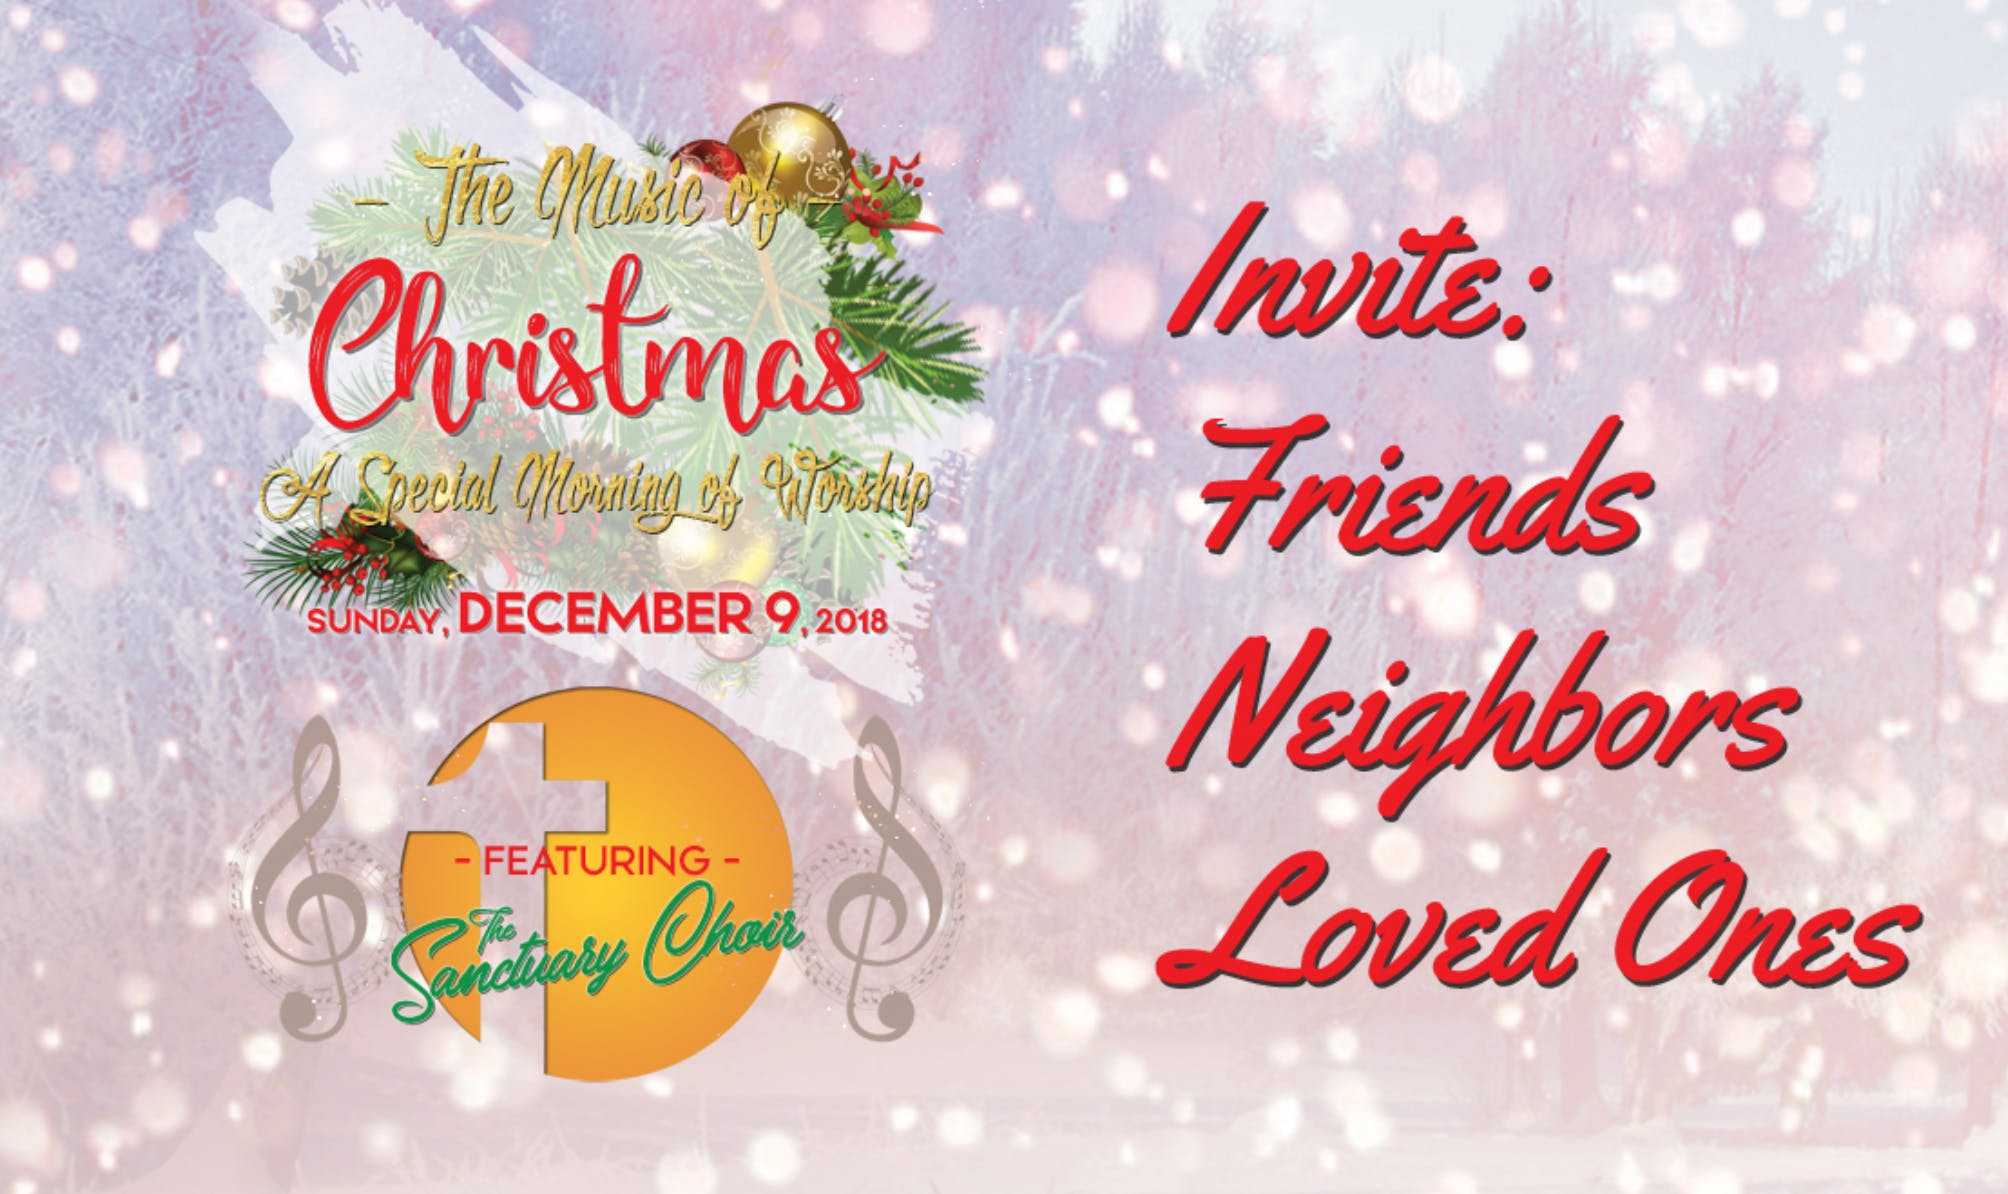 THE MUSIC OF CHRISTMAS` CONCERT -- A Special Morning of Worship in ...